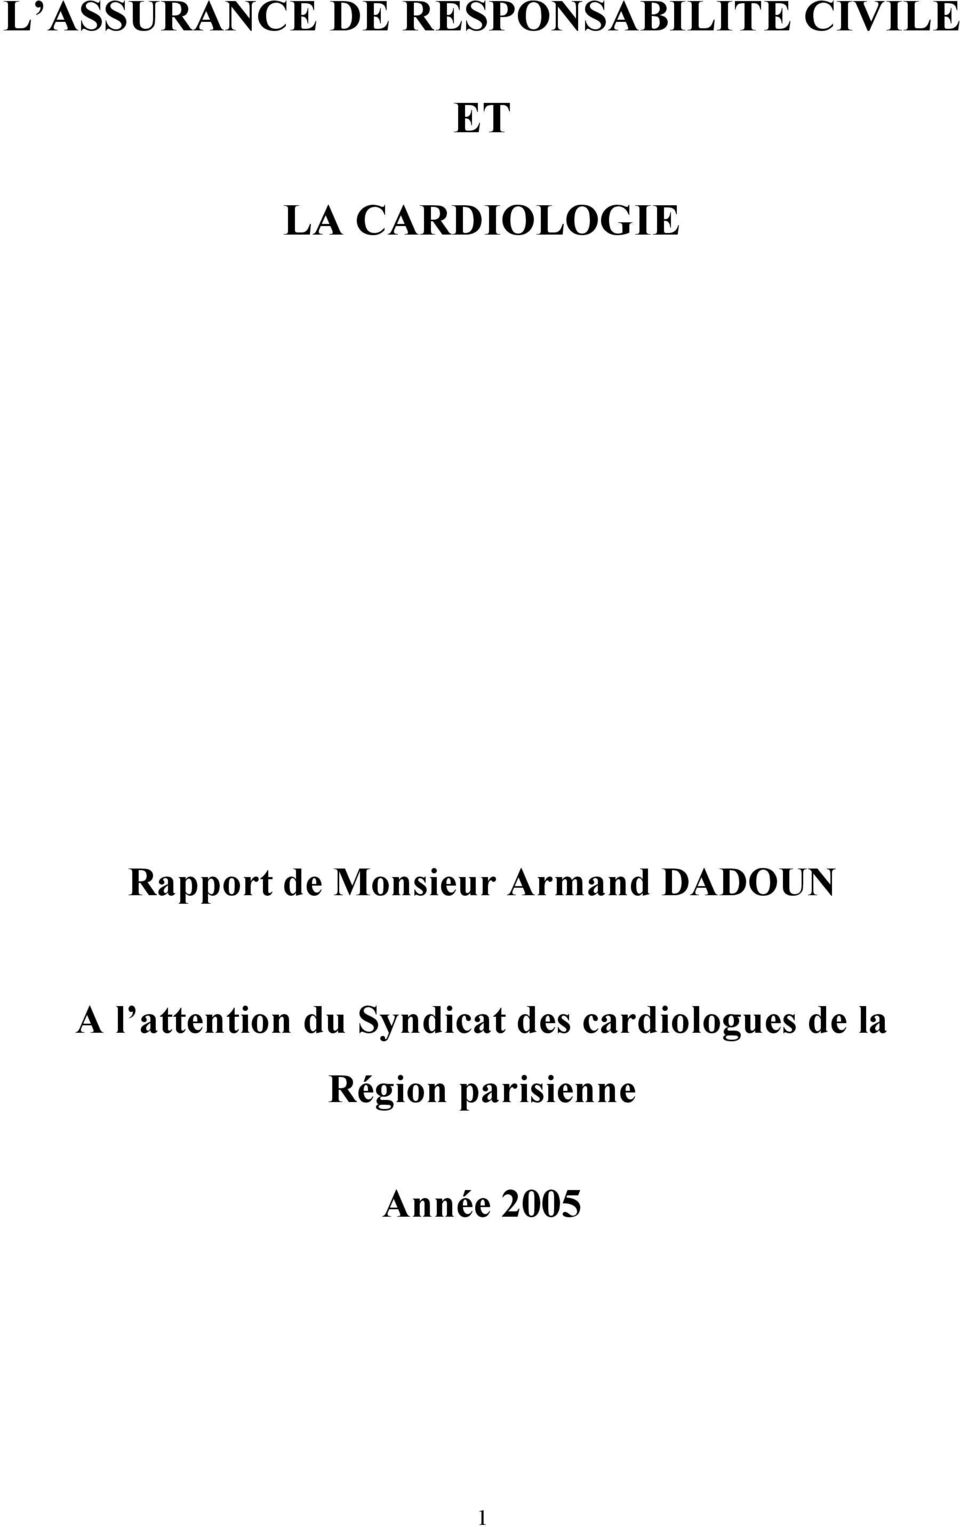 DADOUN A l attention du Syndicat des